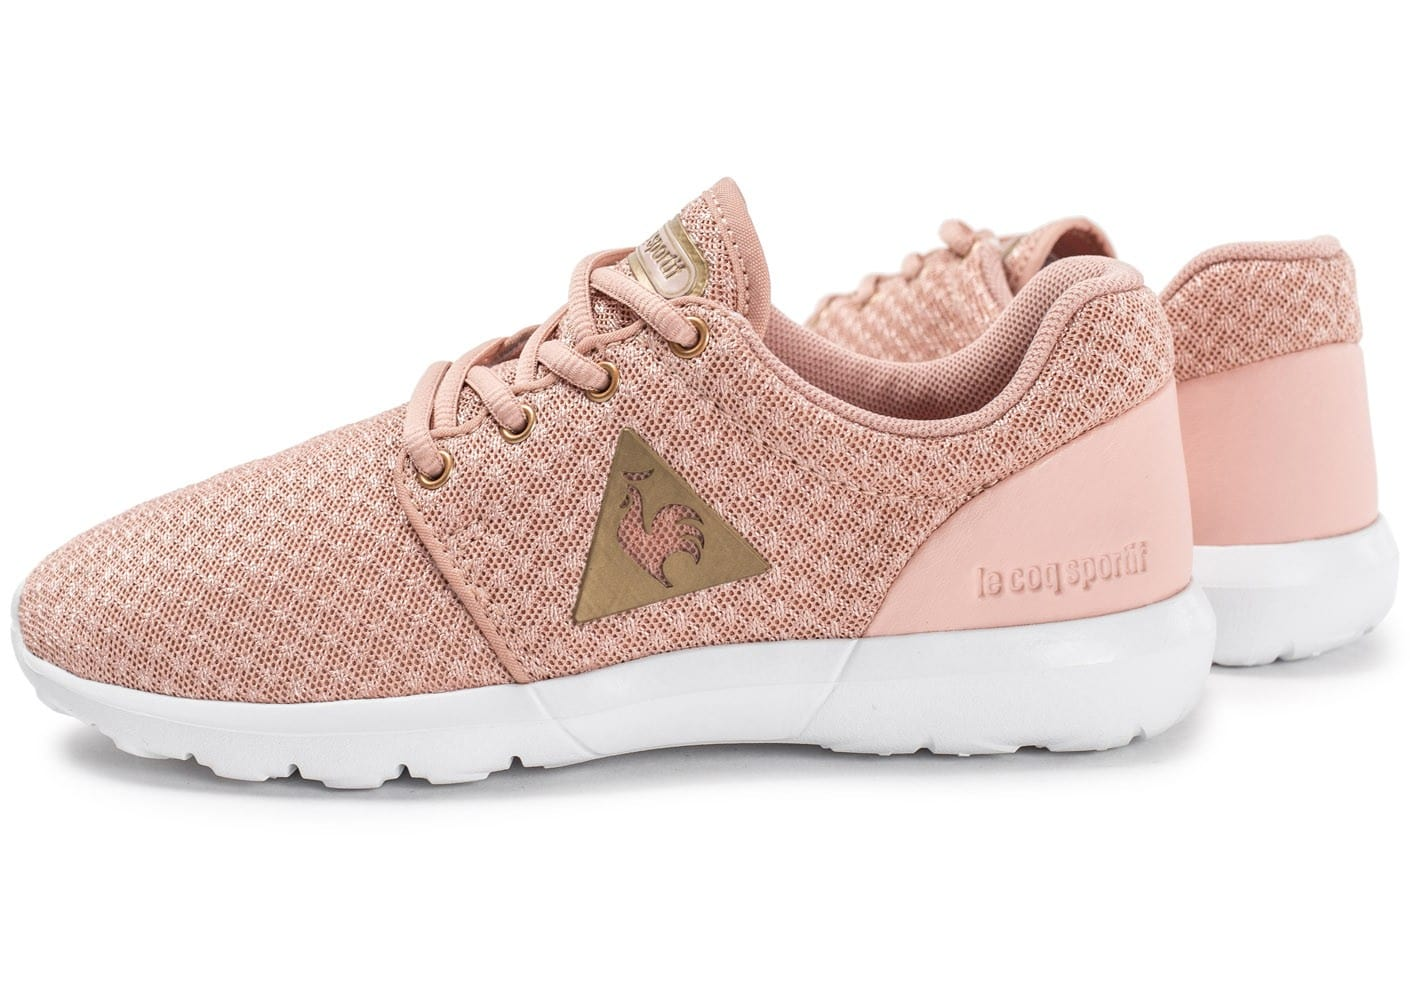 Chaussures automne roses femme RsulALEWm